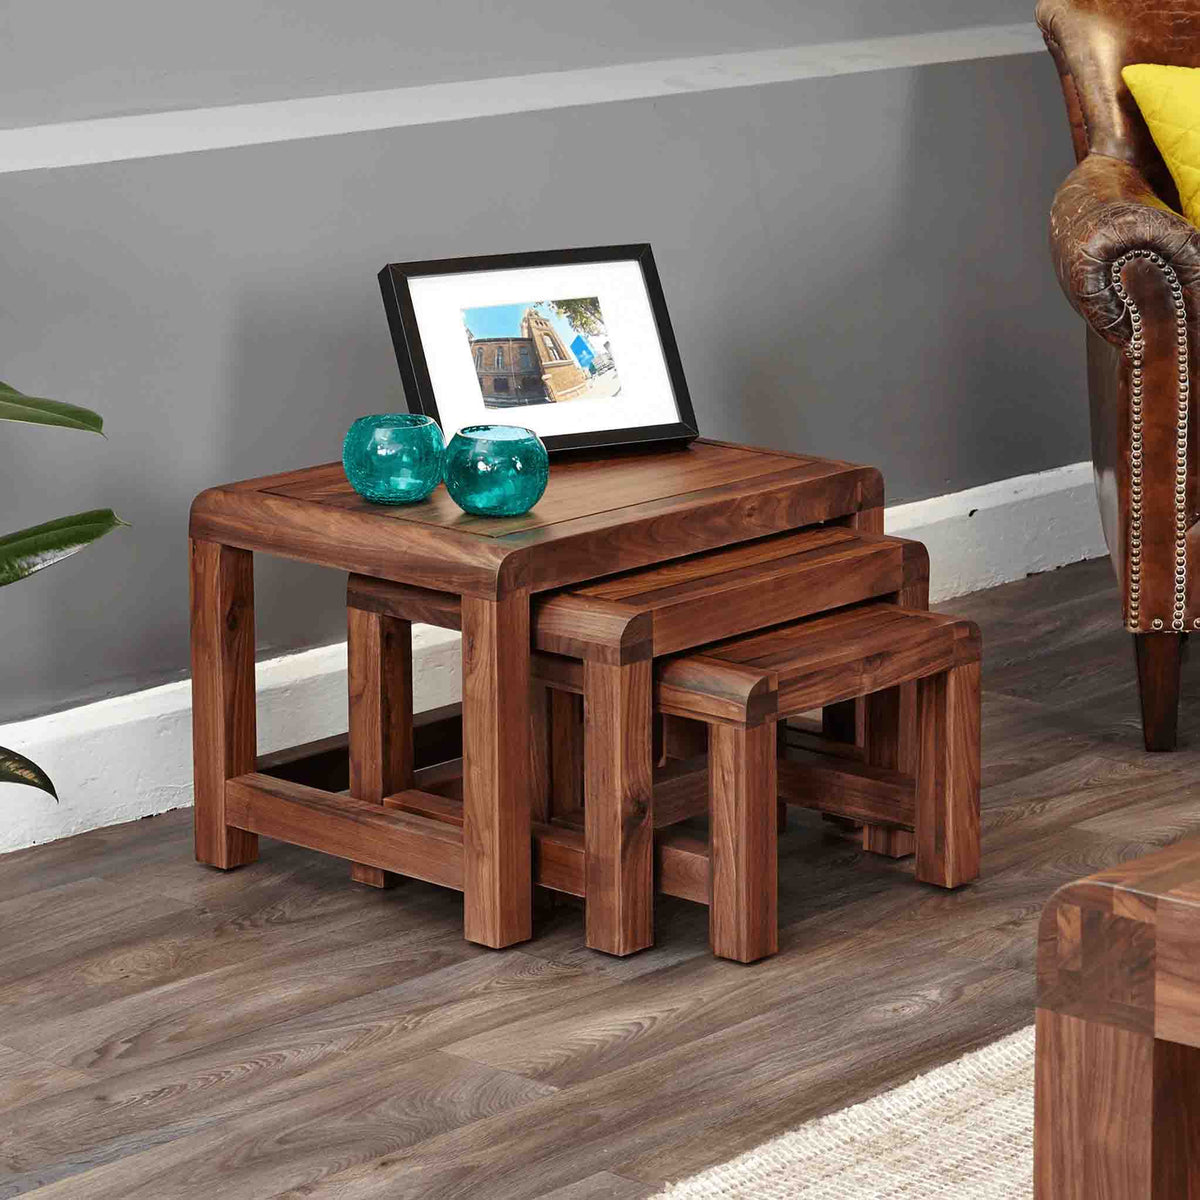 The Salem Walnut Solid Wooden Nest of Tables from Roseland Furniture